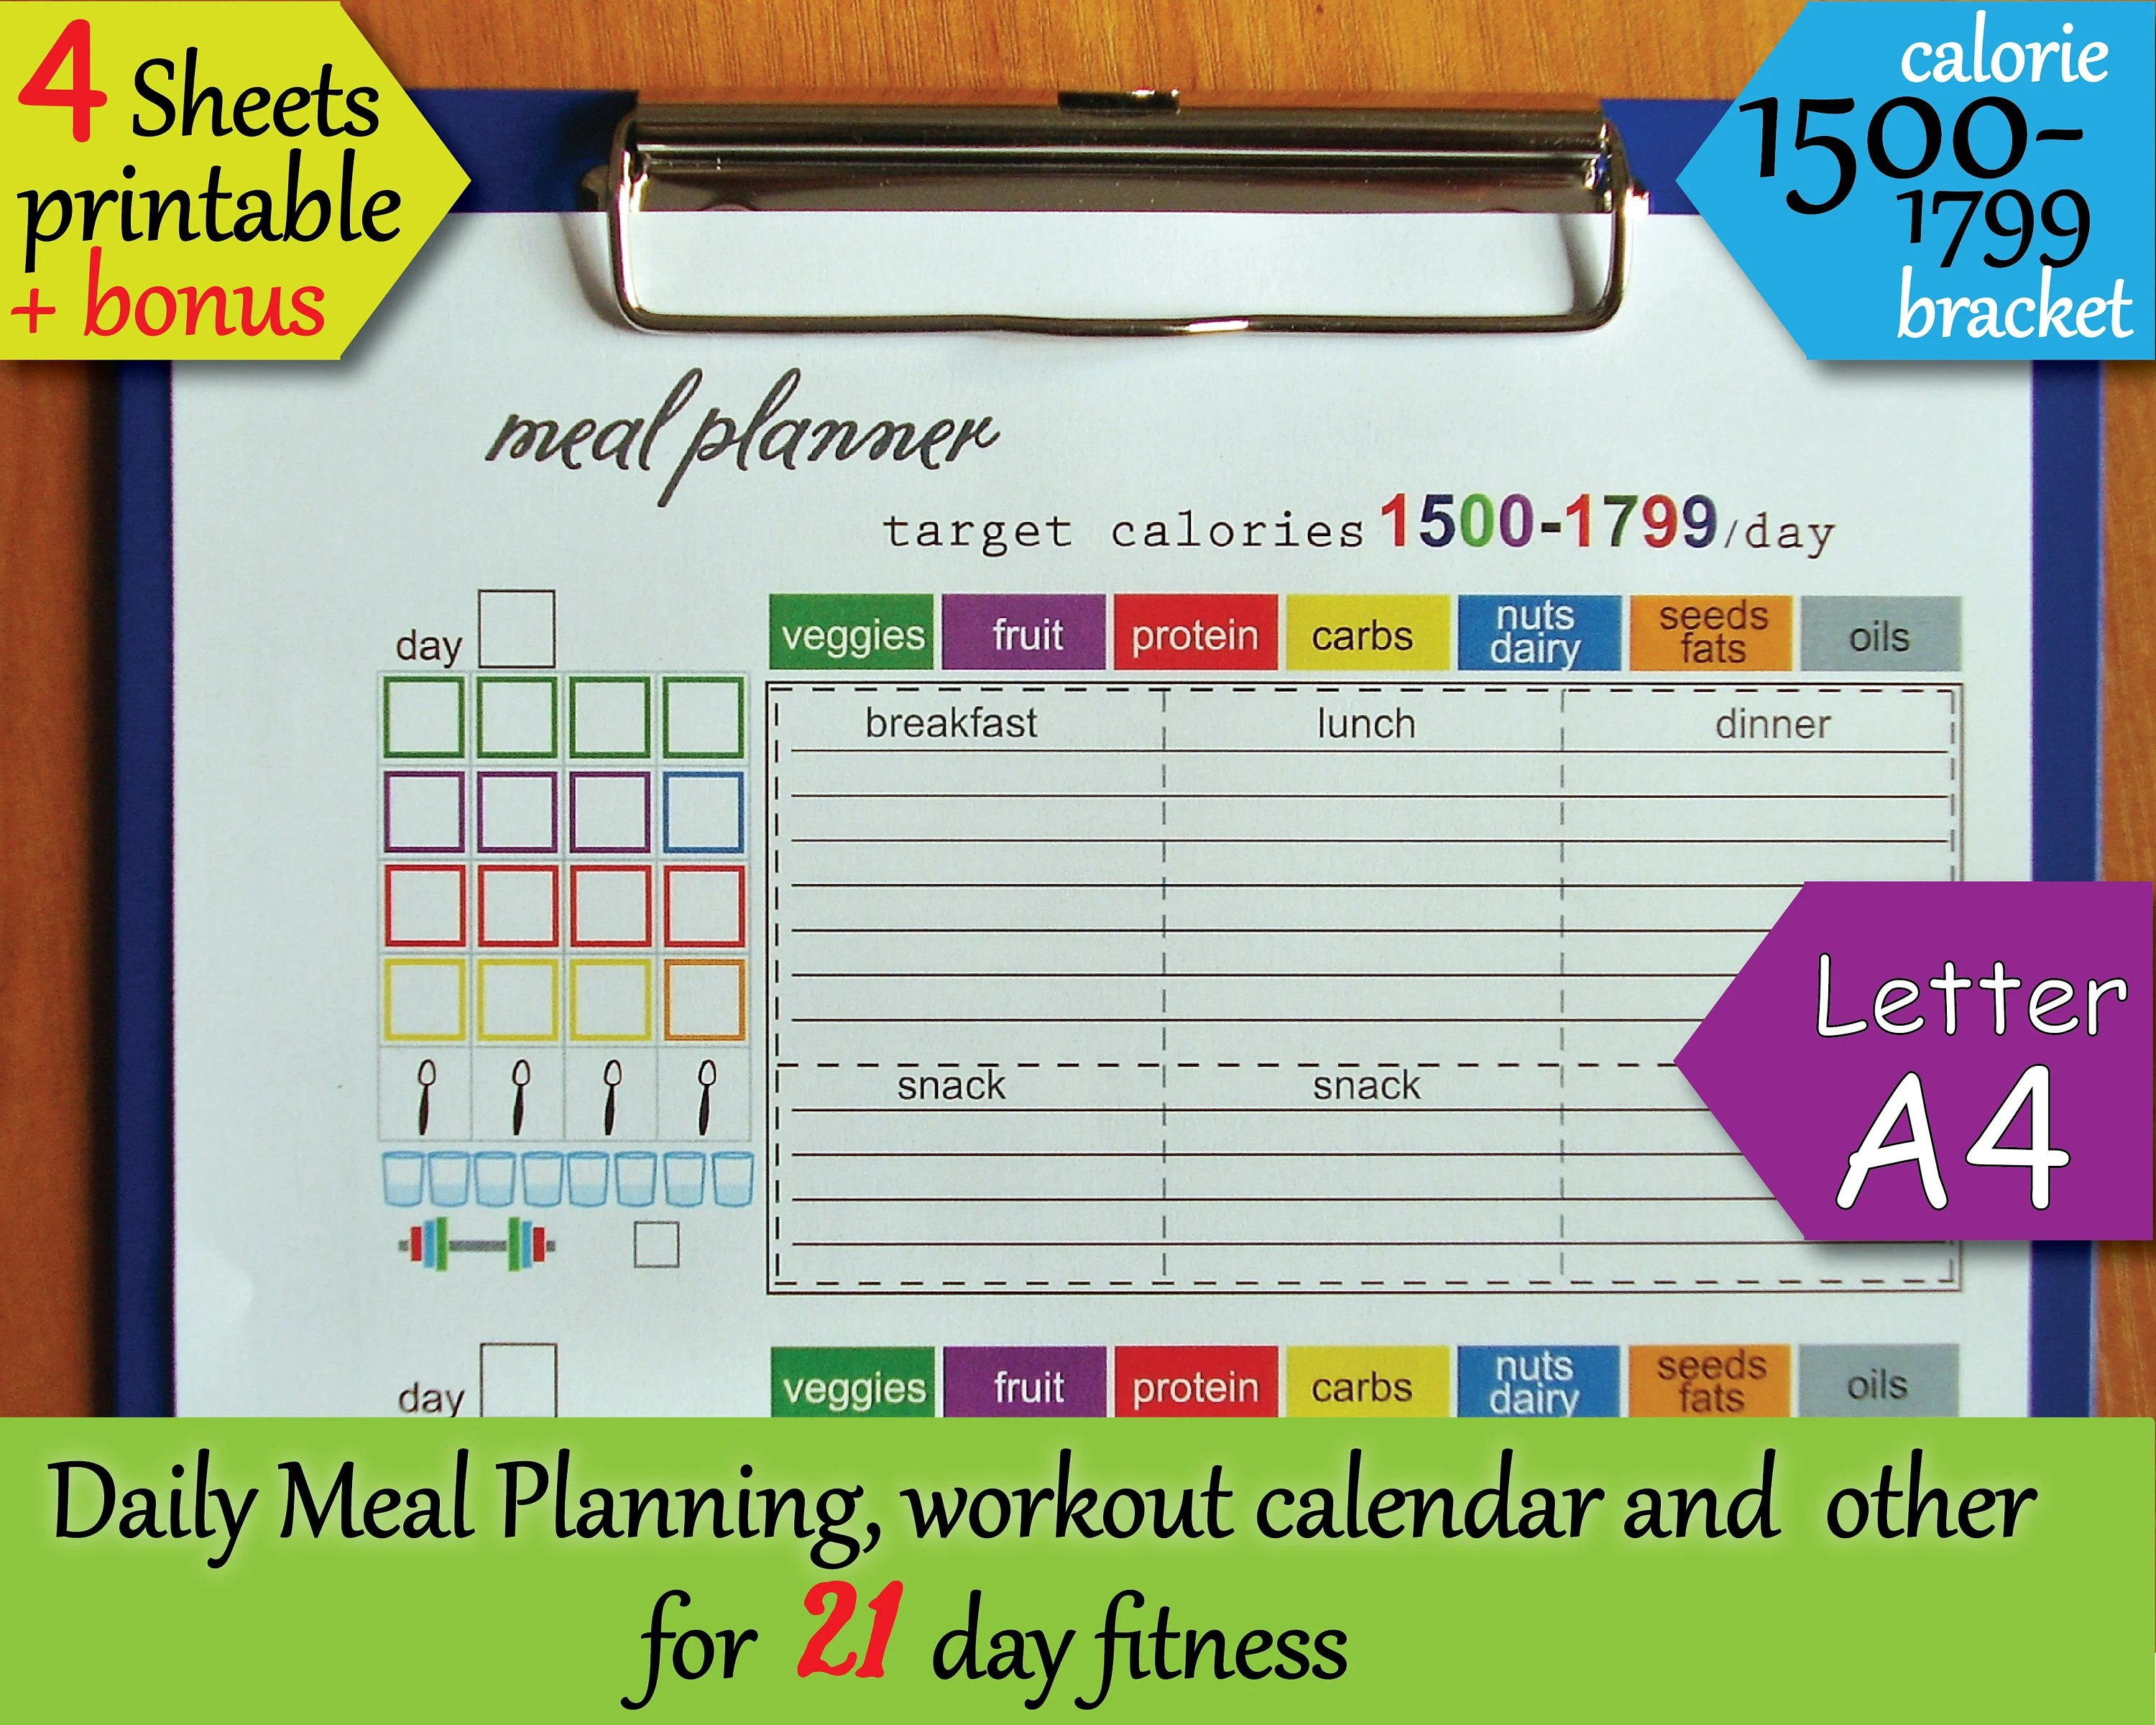 21 Day Fitness Printables Tracking Sheet Calorie Bracket